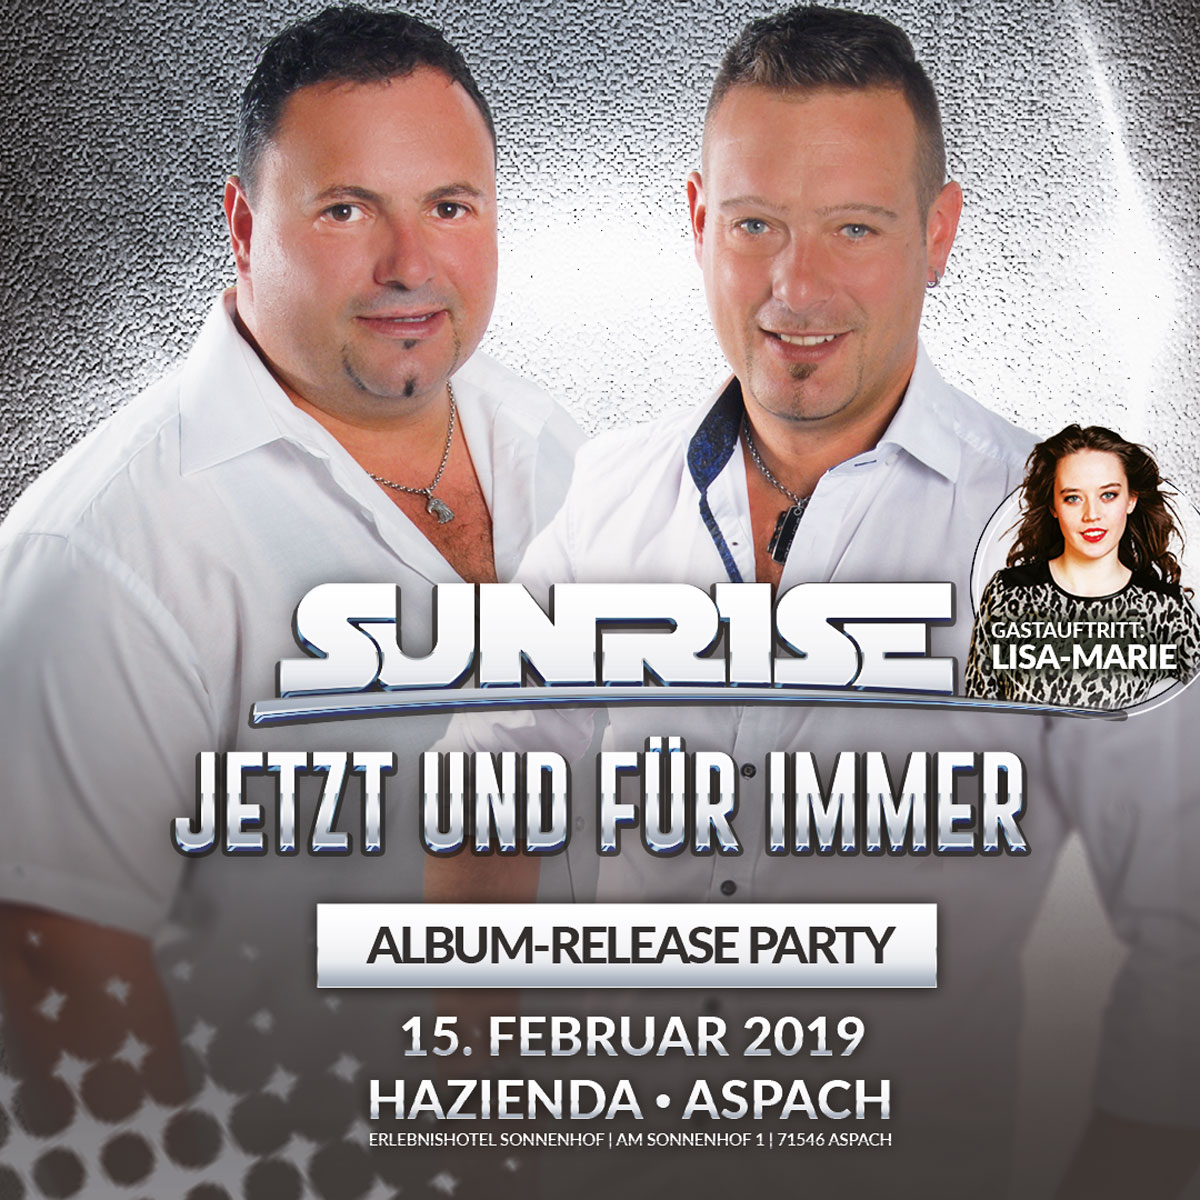 Ticket Sunrise Album-Releaseparty